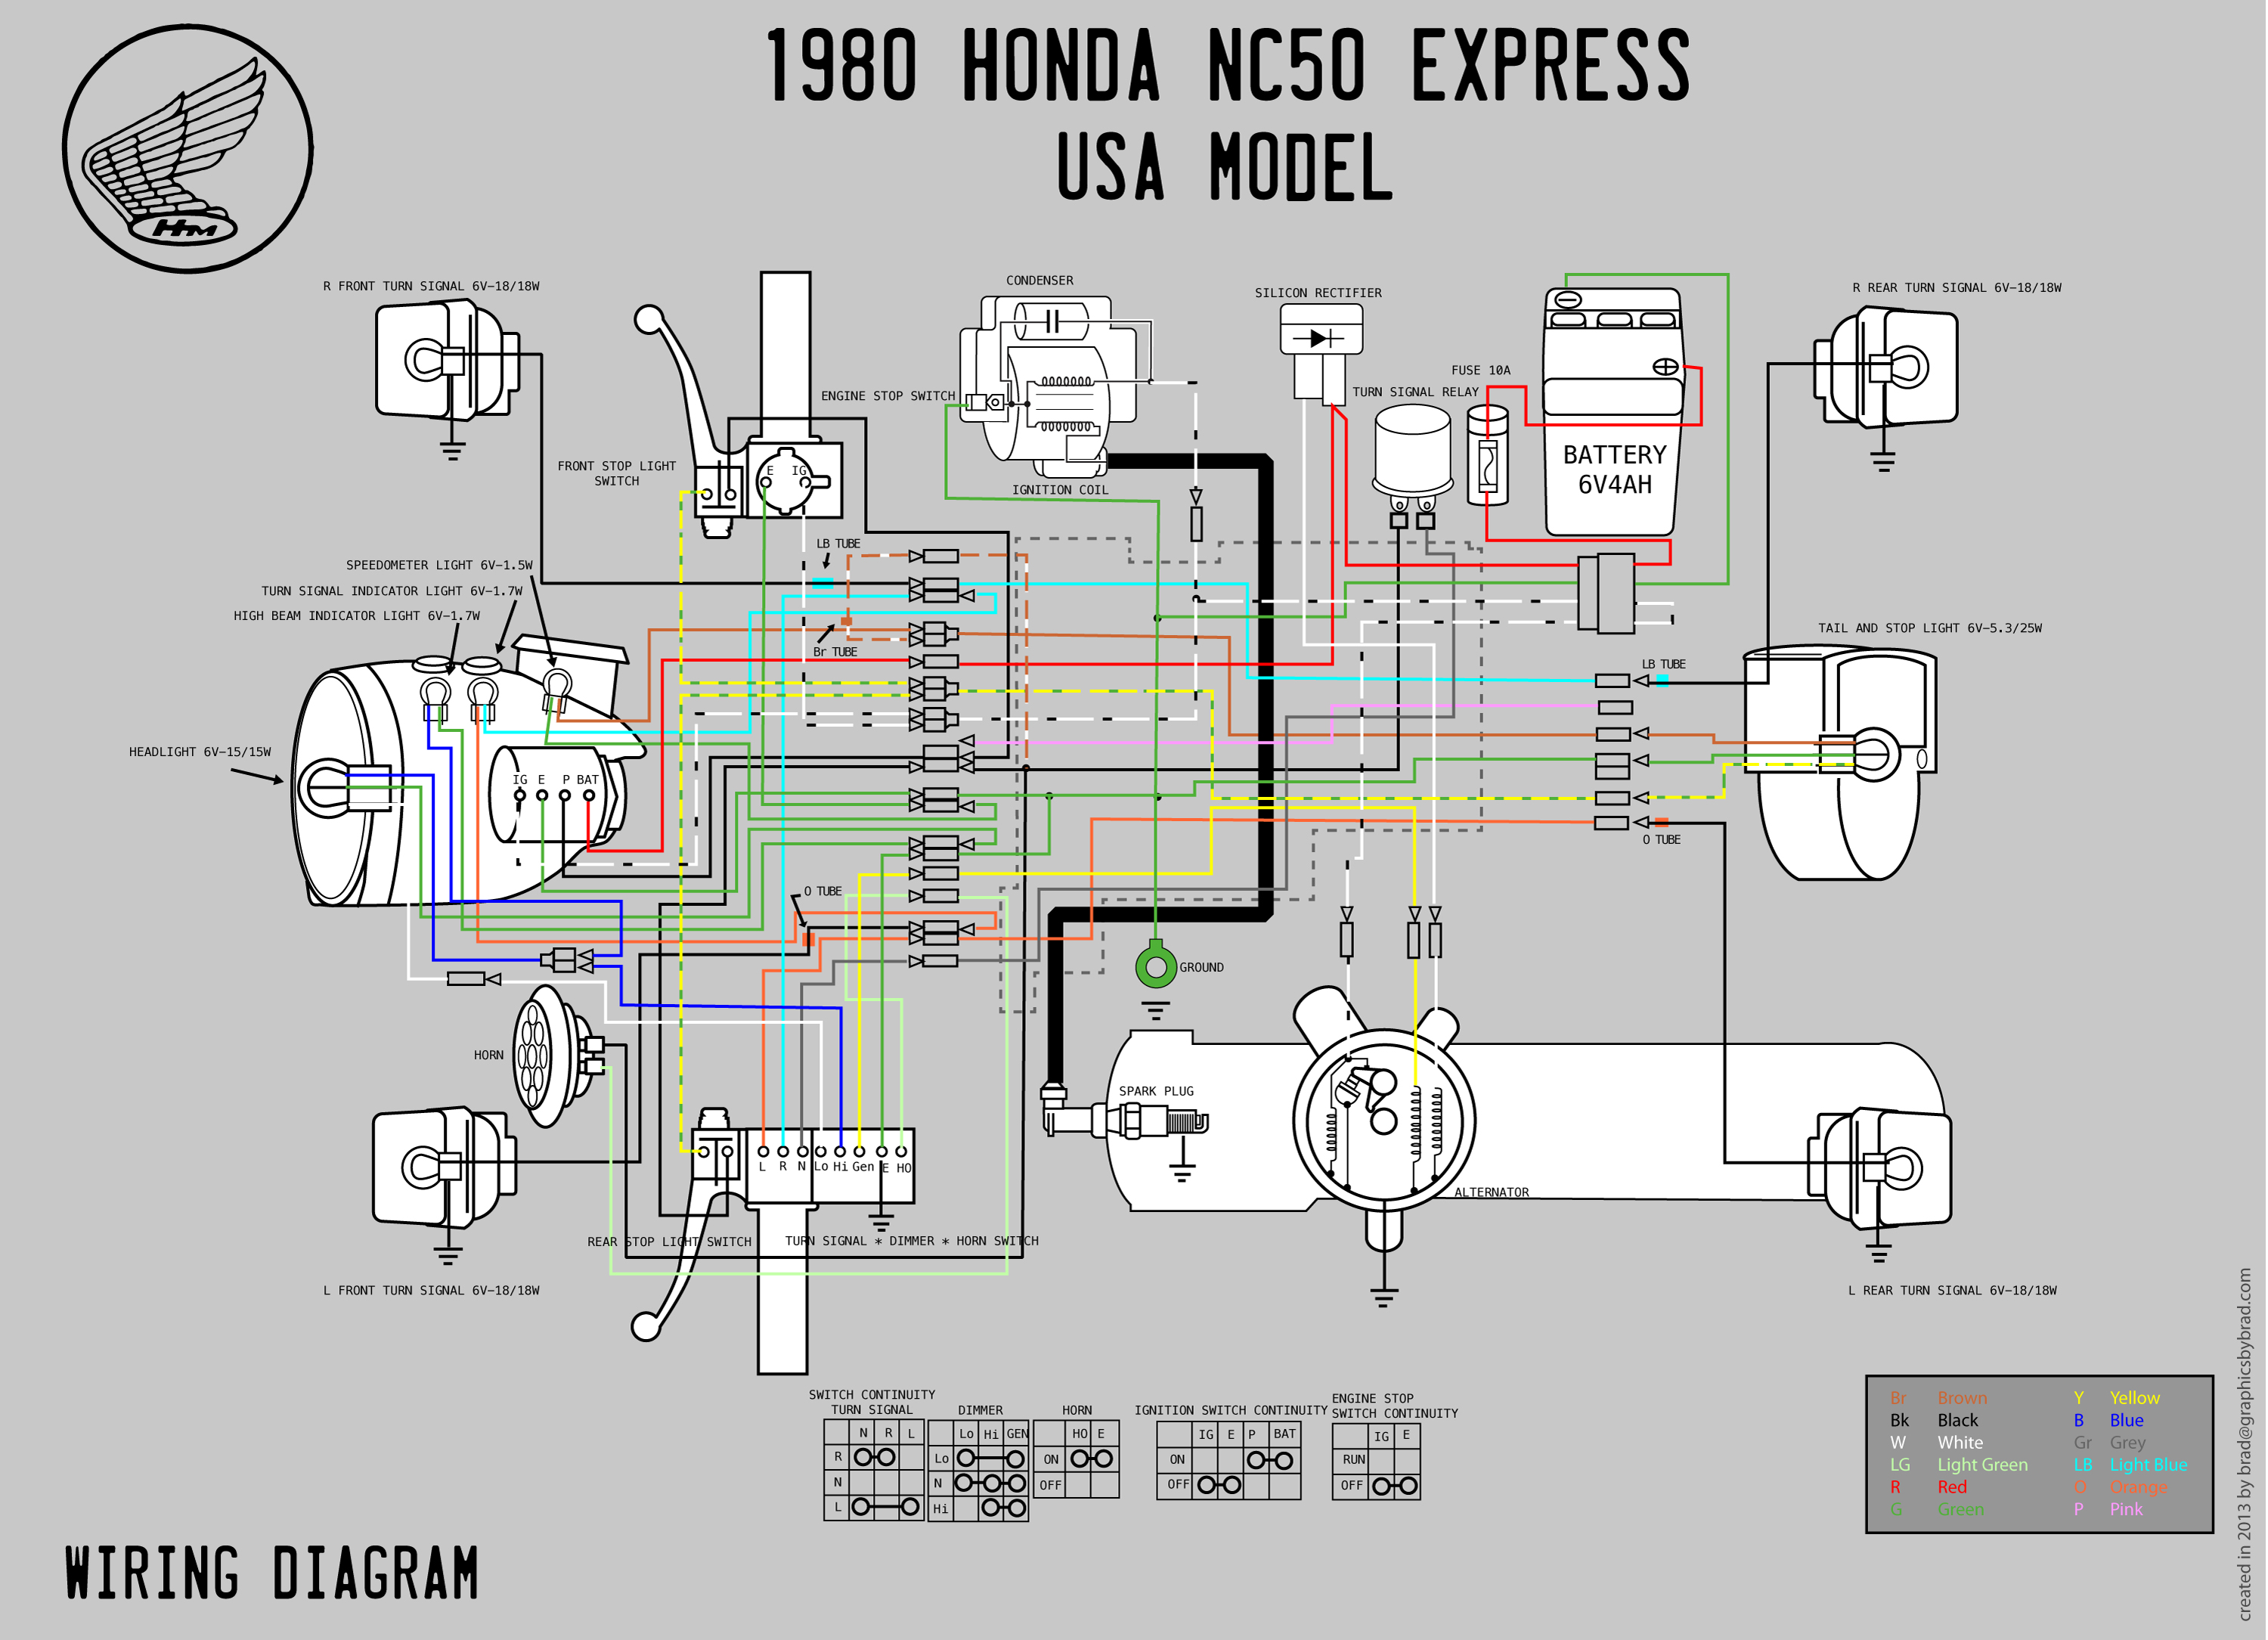 1980 nc50 wiring lrg 1980 honda nc50 wiring diagram moped wiki honda 50 wiring diagram at alyssarenee.co